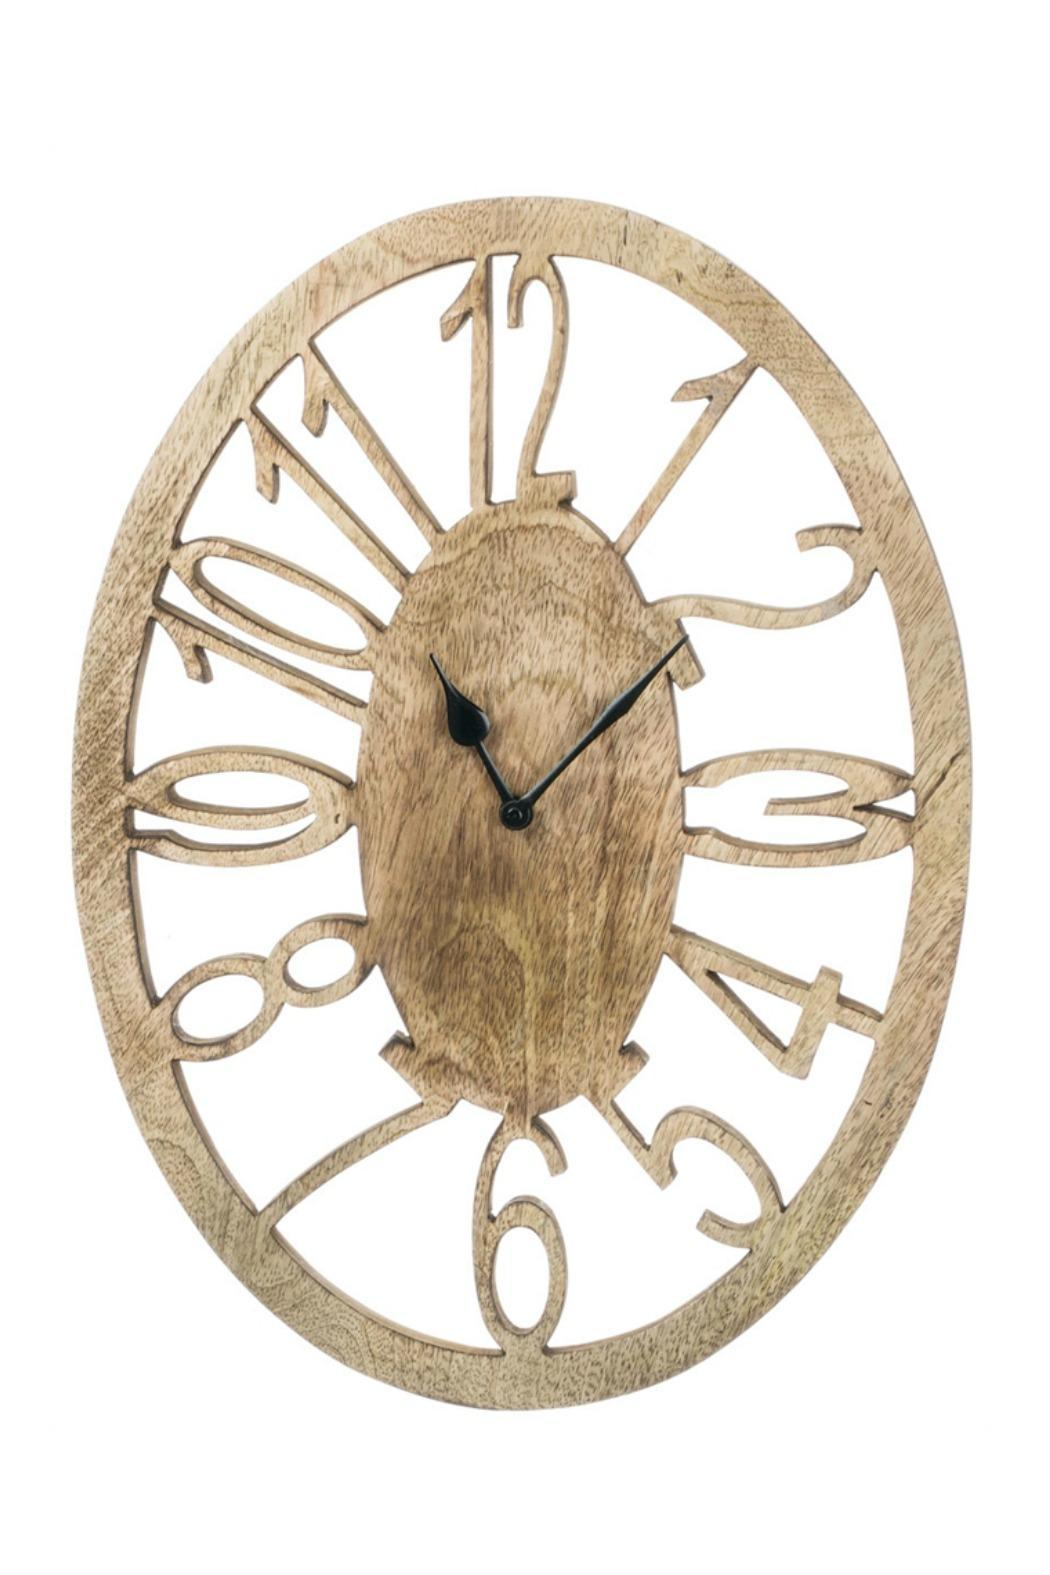 Walker 39 s oval wall clock from alabama shoptiques - Oval wall decor ...